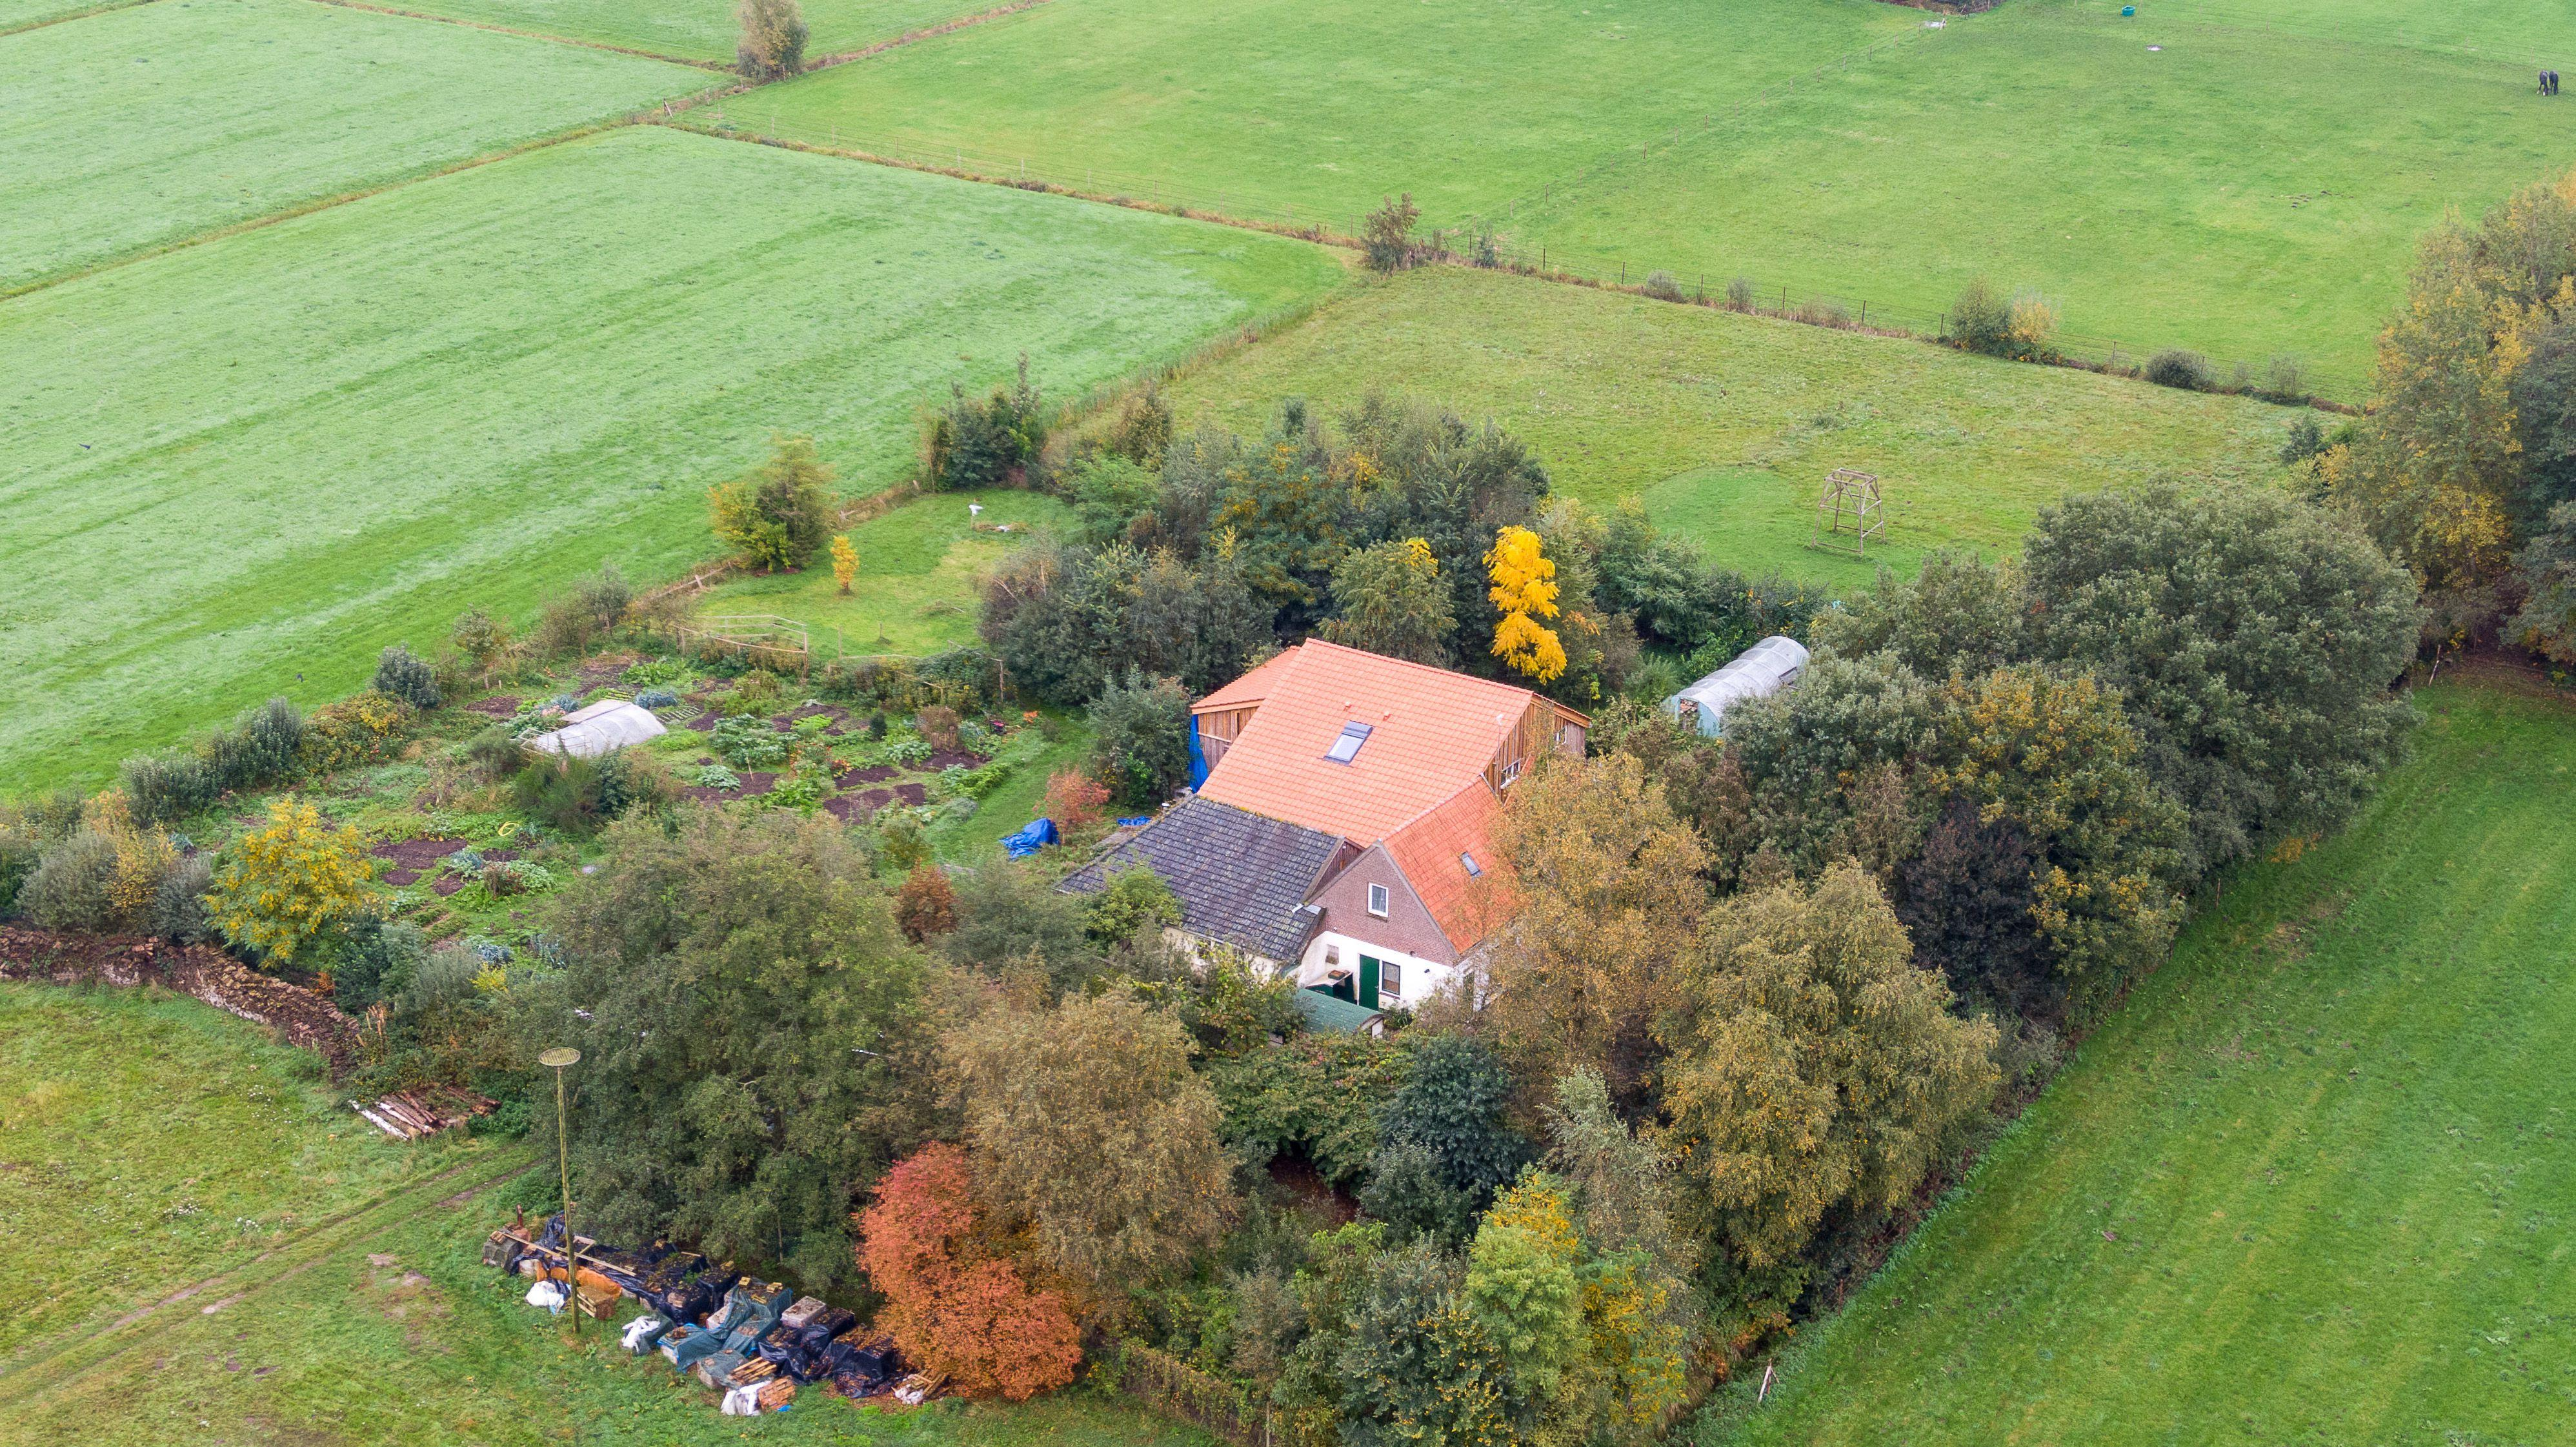 Dutch family discovered in hidden room inside farm house were waiting 'for the end of time'